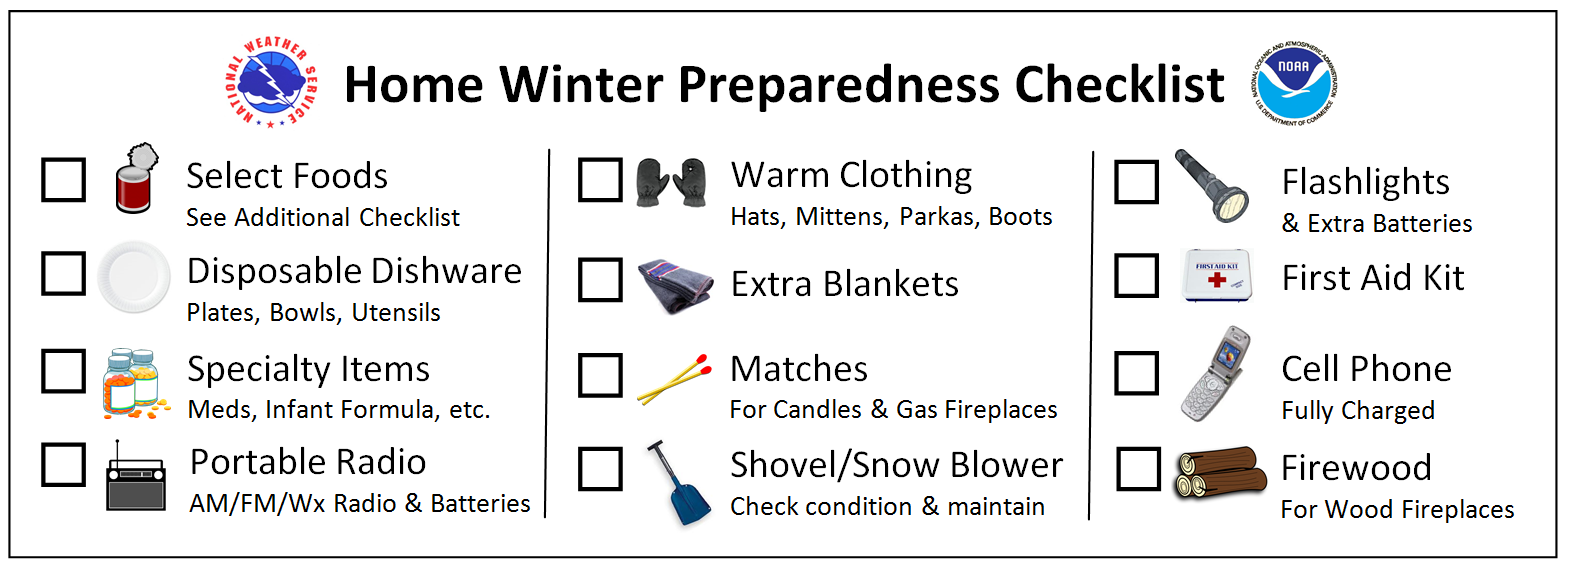 Home Winter Preparedness Checklist